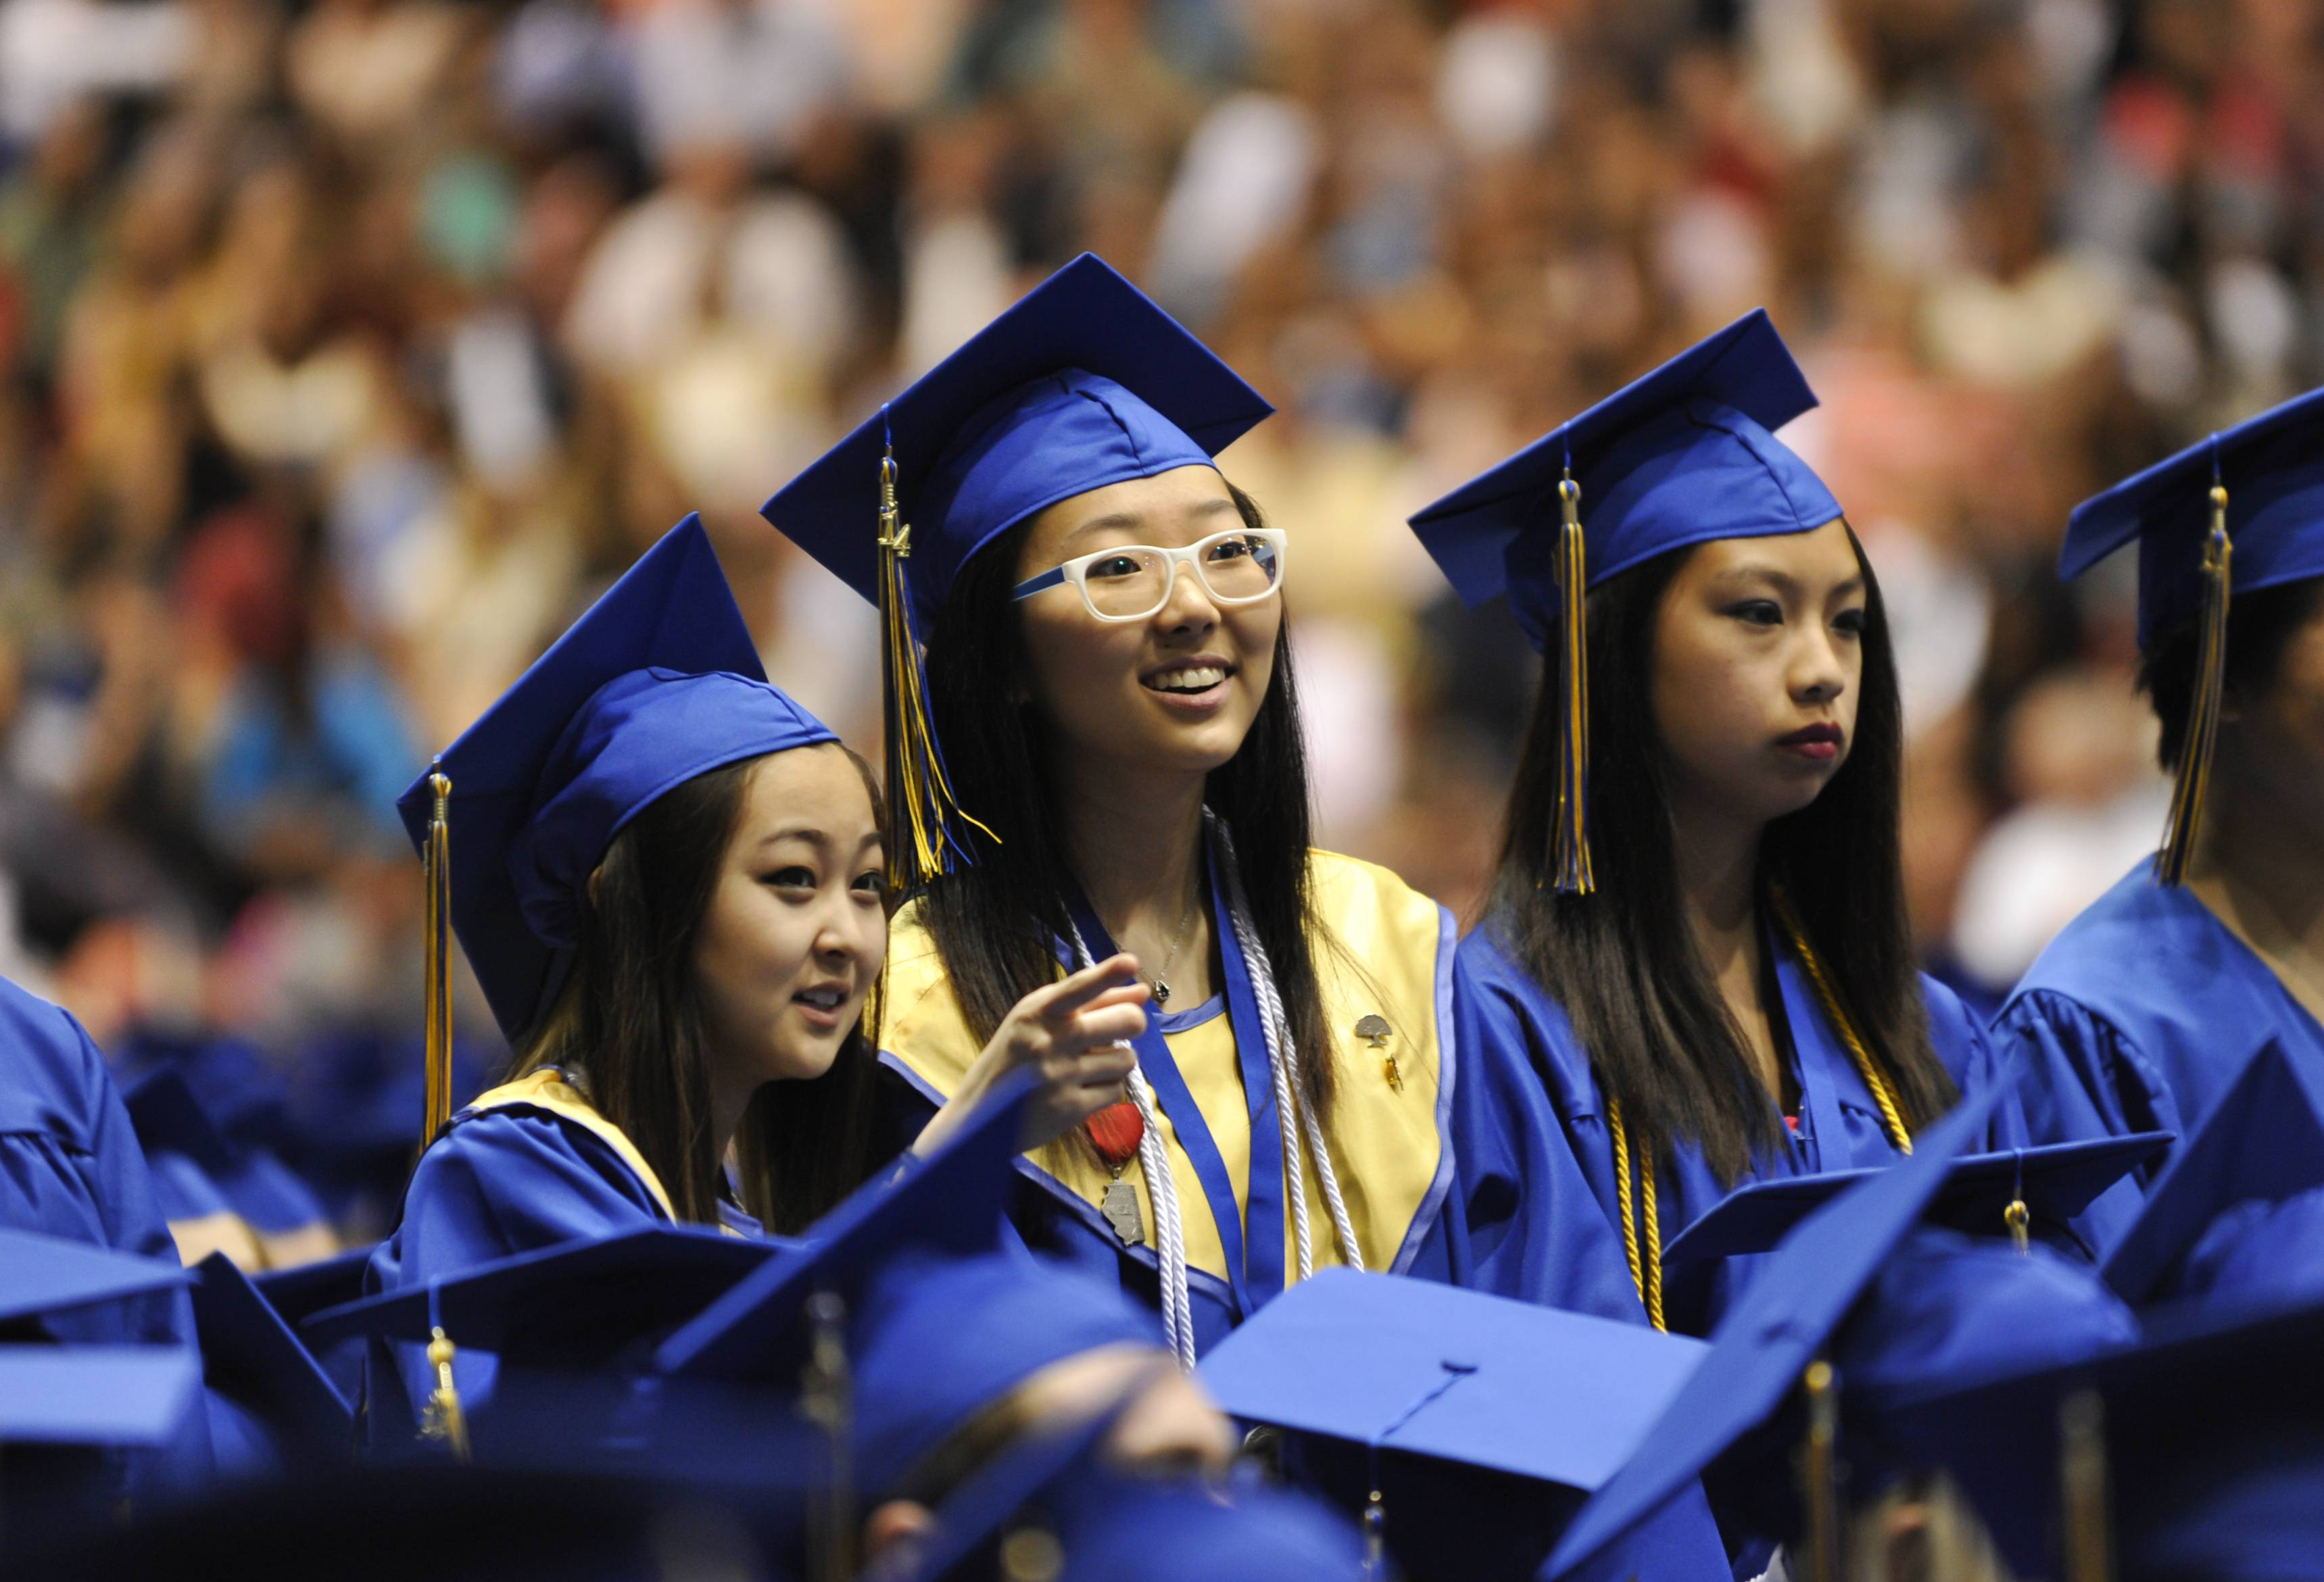 Erica Chau of Park City, Young-Ji Cho of Gurnee, and Jade Gonzales Chua of Gurnee look into the audience during the Warren Township High School commencement at Northwestern University's Welsh-Ryan Arena in Evanston on Saturday, May 24. All three students graduated with honors.